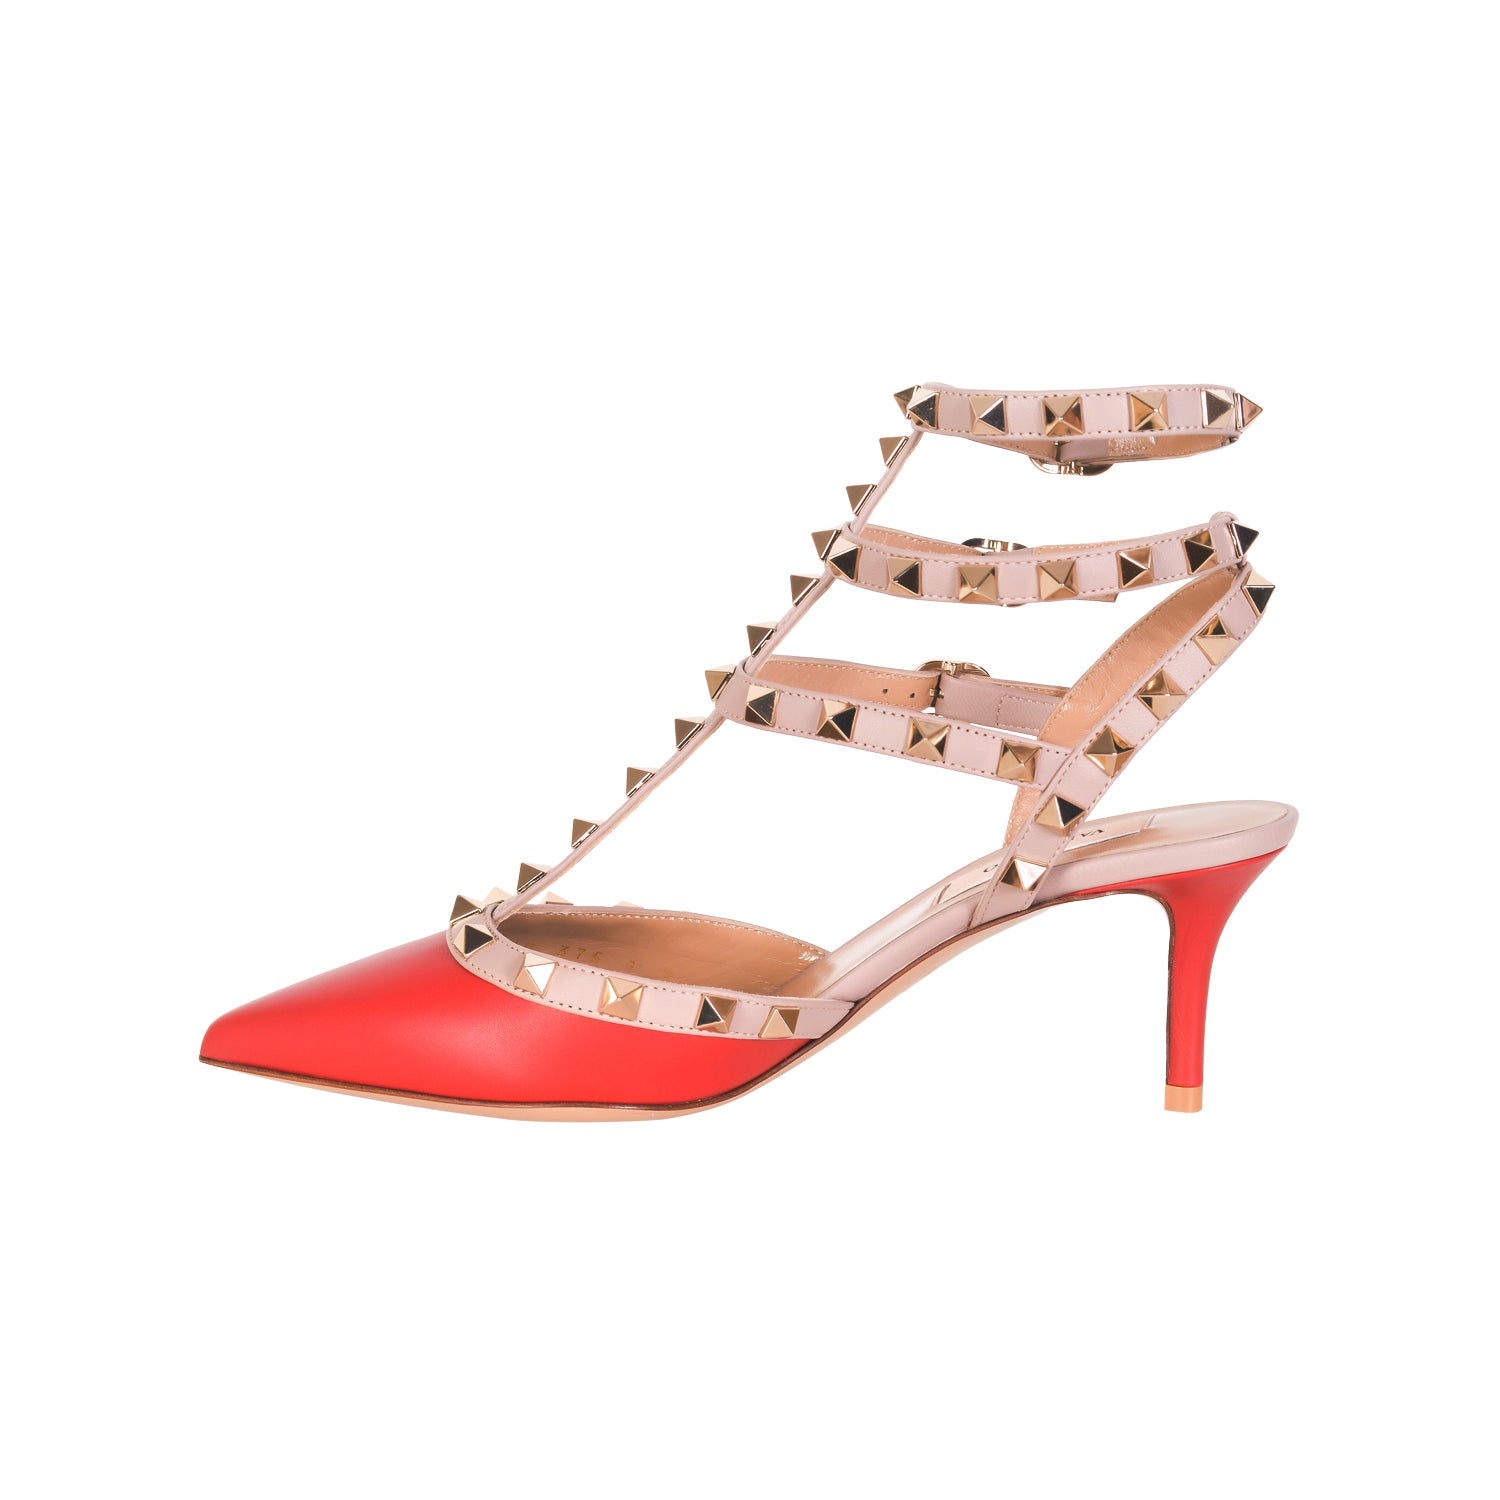 VALENTINO Rockstud Ankle Strap in Smooth Leather with Studs